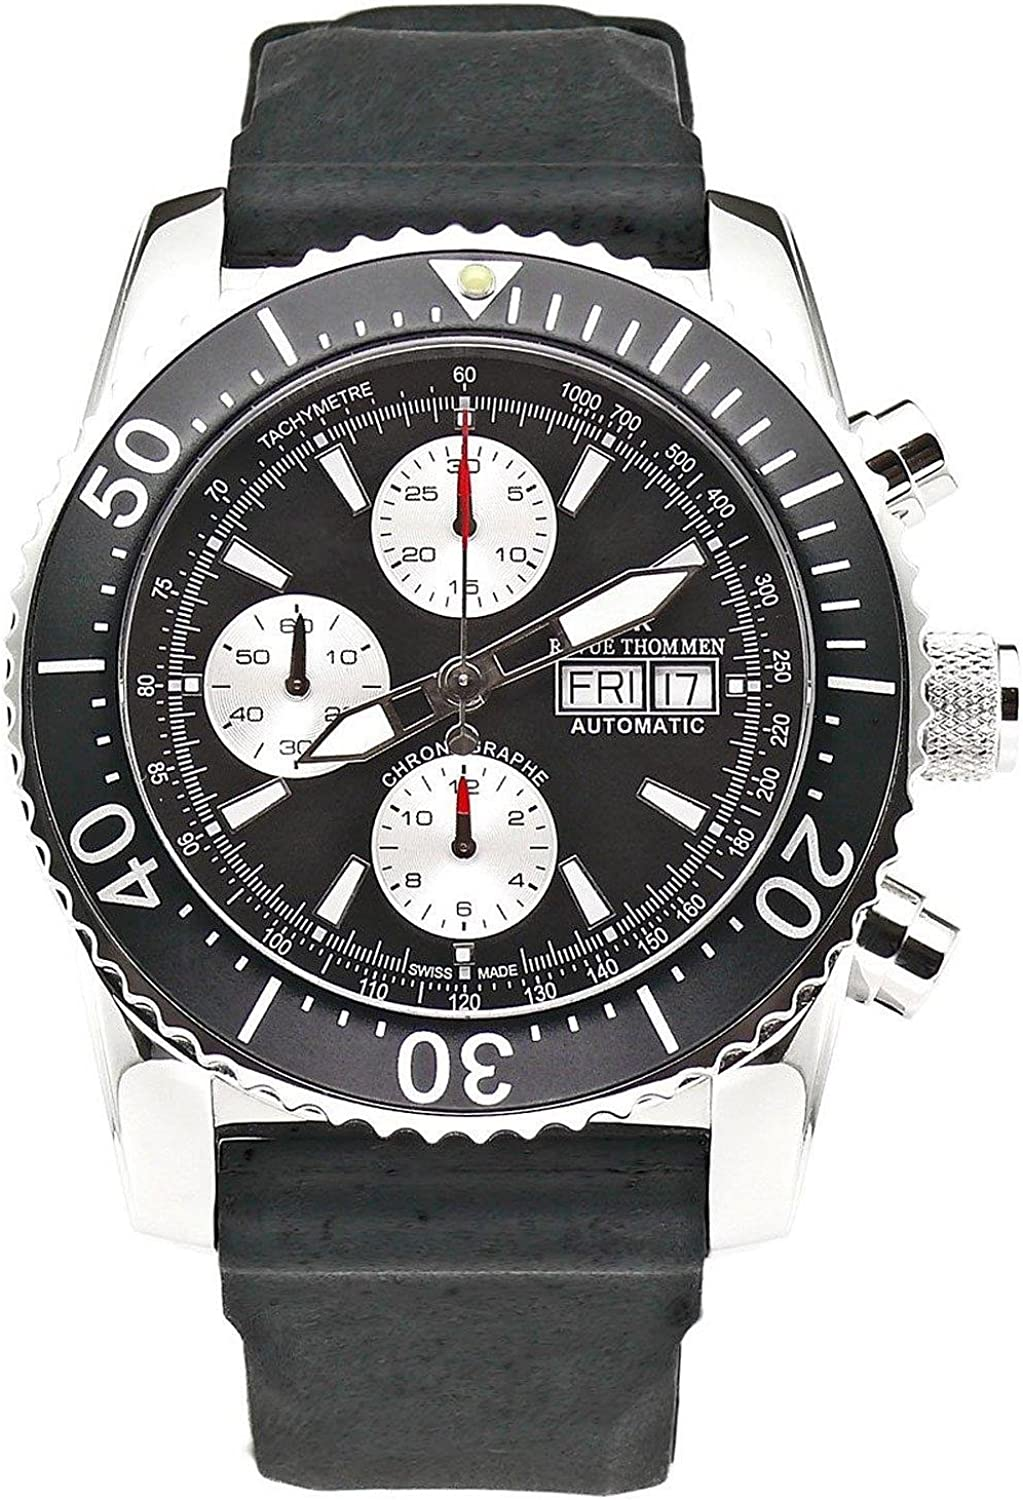 Revue Thommen Automatic Diving Watch Chronograph For Men – Stainless Steel 45mm Analog Black face Sapphire Crystal Day Date Watch – Waterproof Black Rubber Band Swiss Made Mens Diver Watch 17030.6537